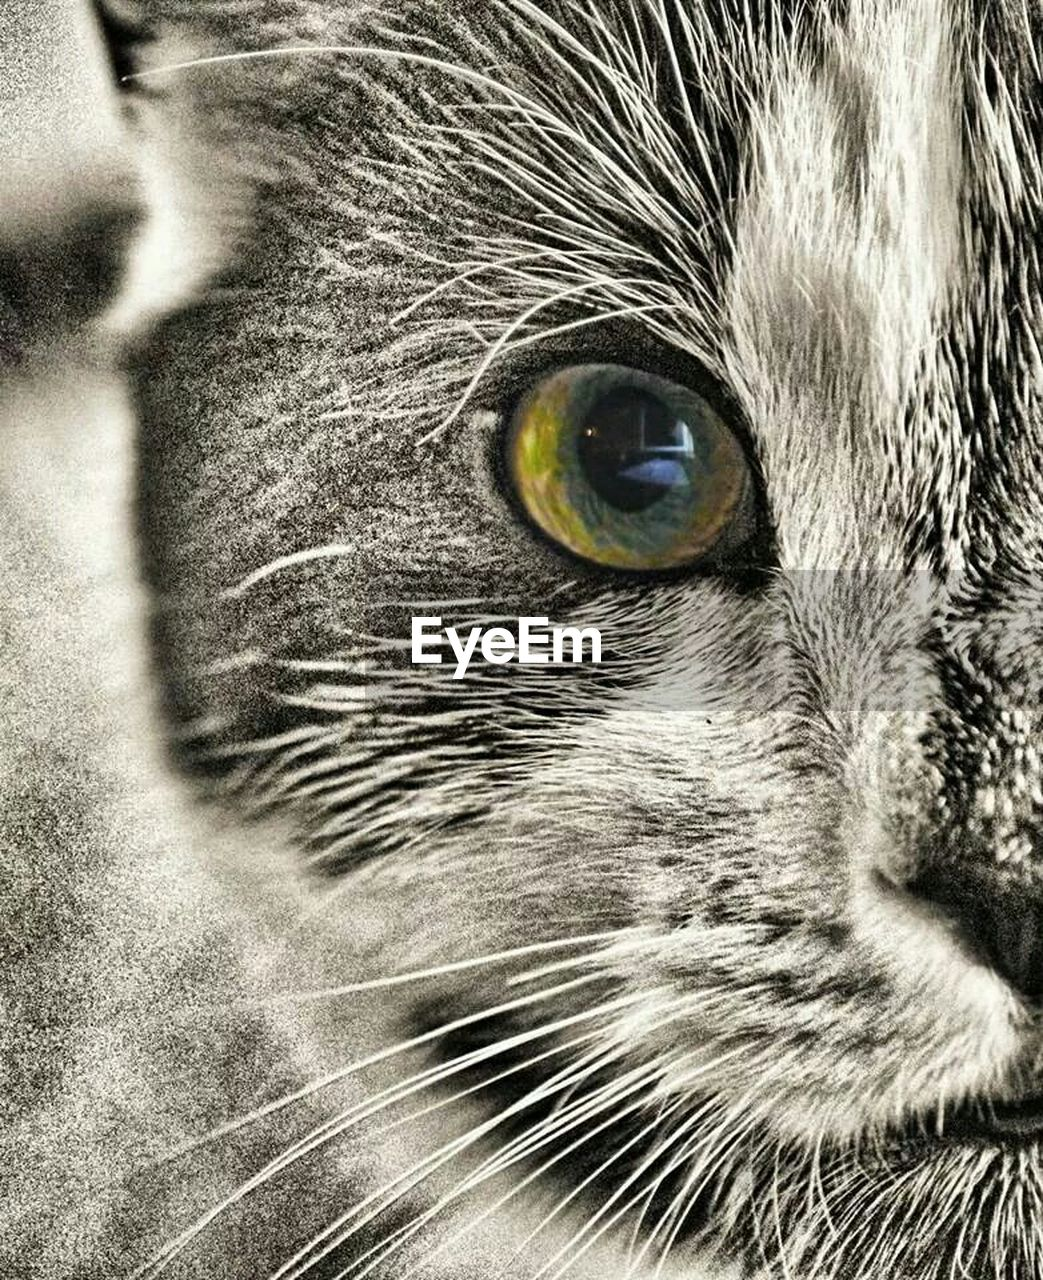 one animal, pets, animal themes, domestic animals, animal head, animal eye, domestic cat, portrait, whisker, close-up, looking at camera, feline, no people, mammal, outdoors, nature, day